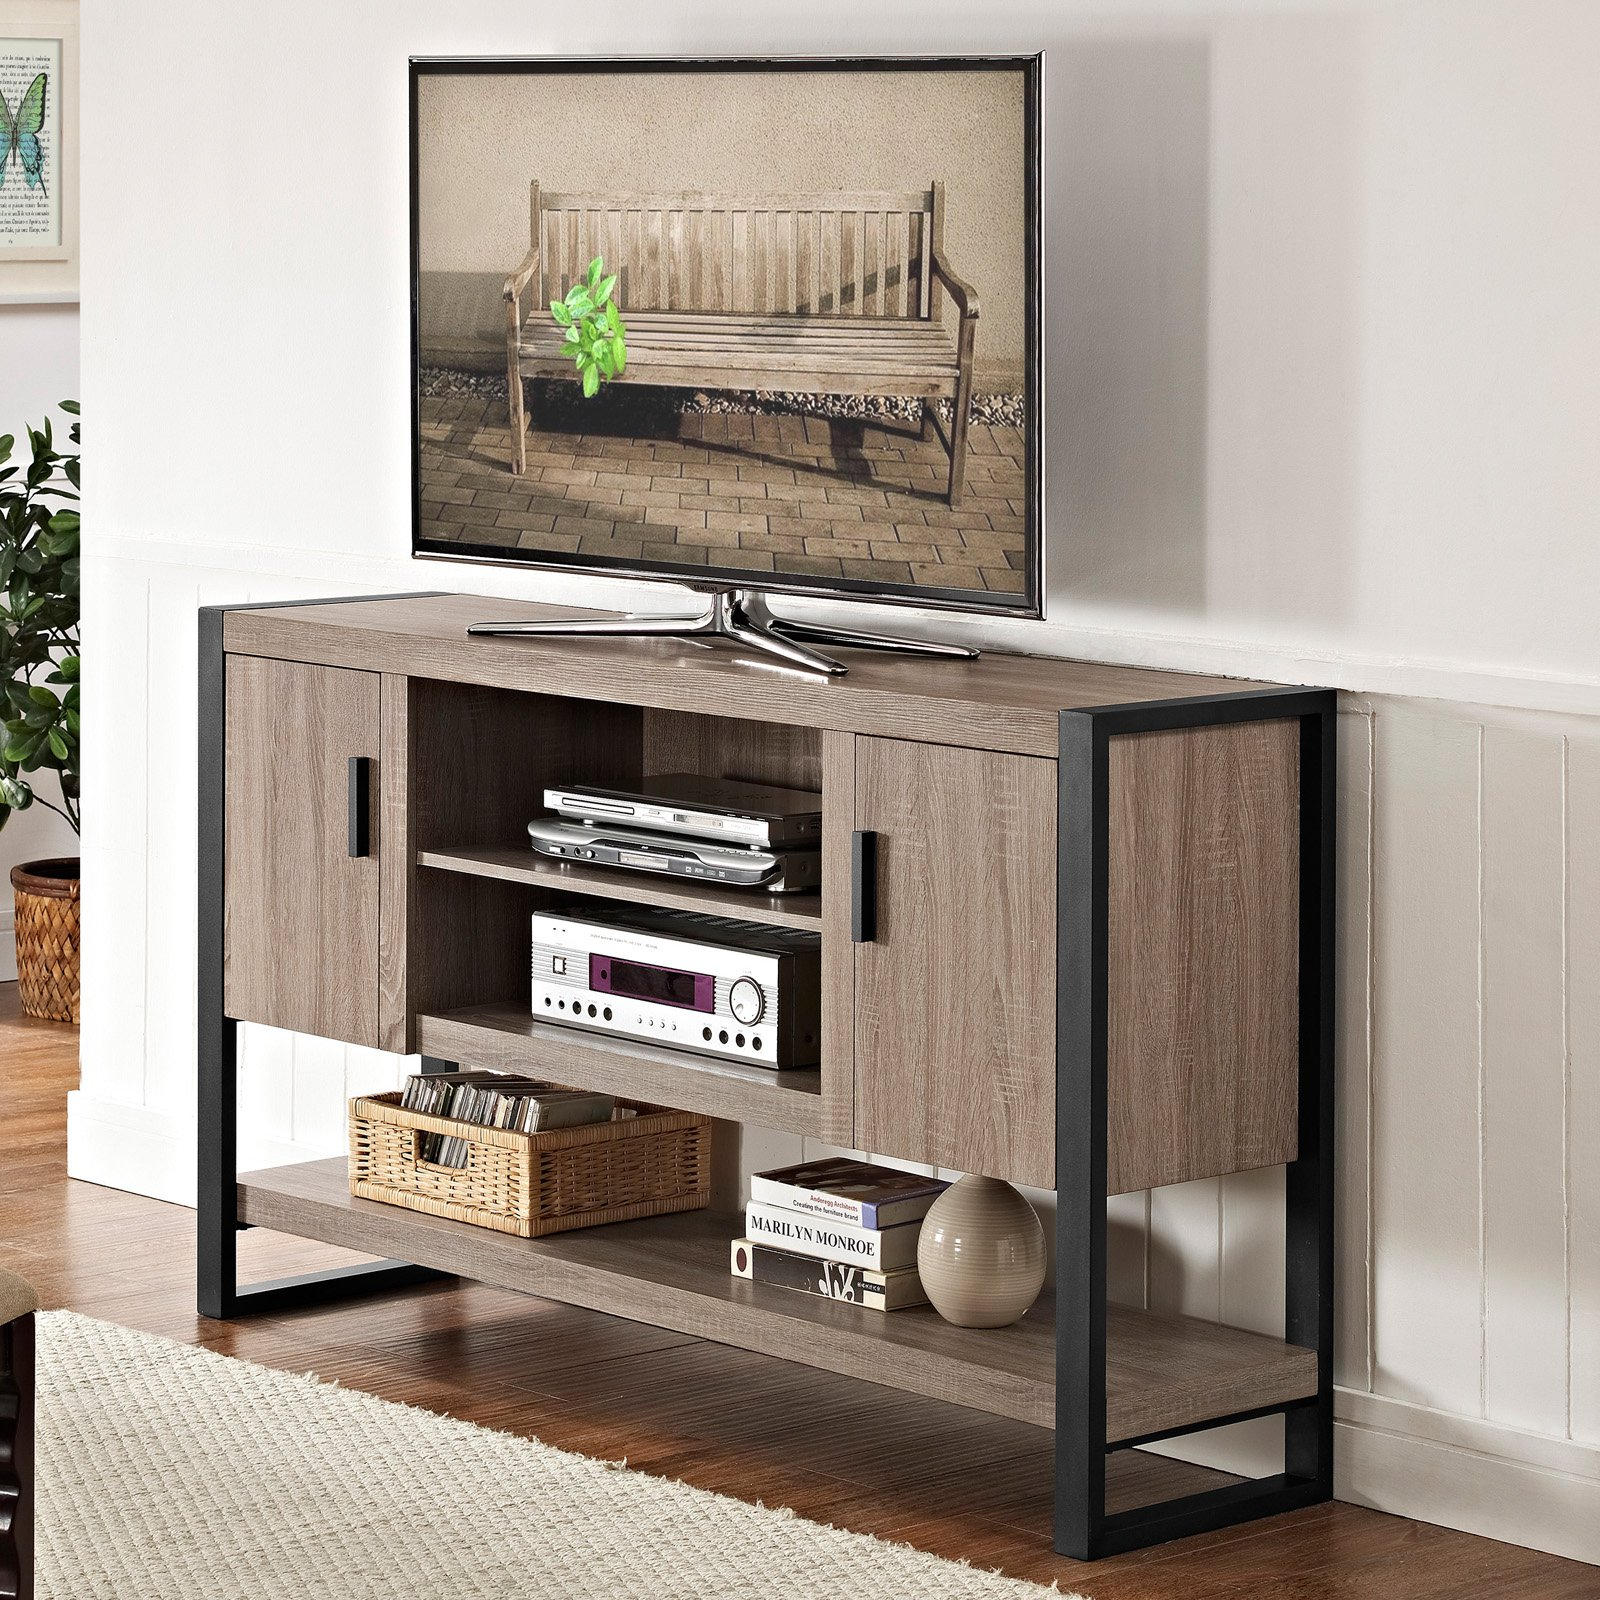 Walker edison urban blend tv console table walmart geotapseo Choice Image